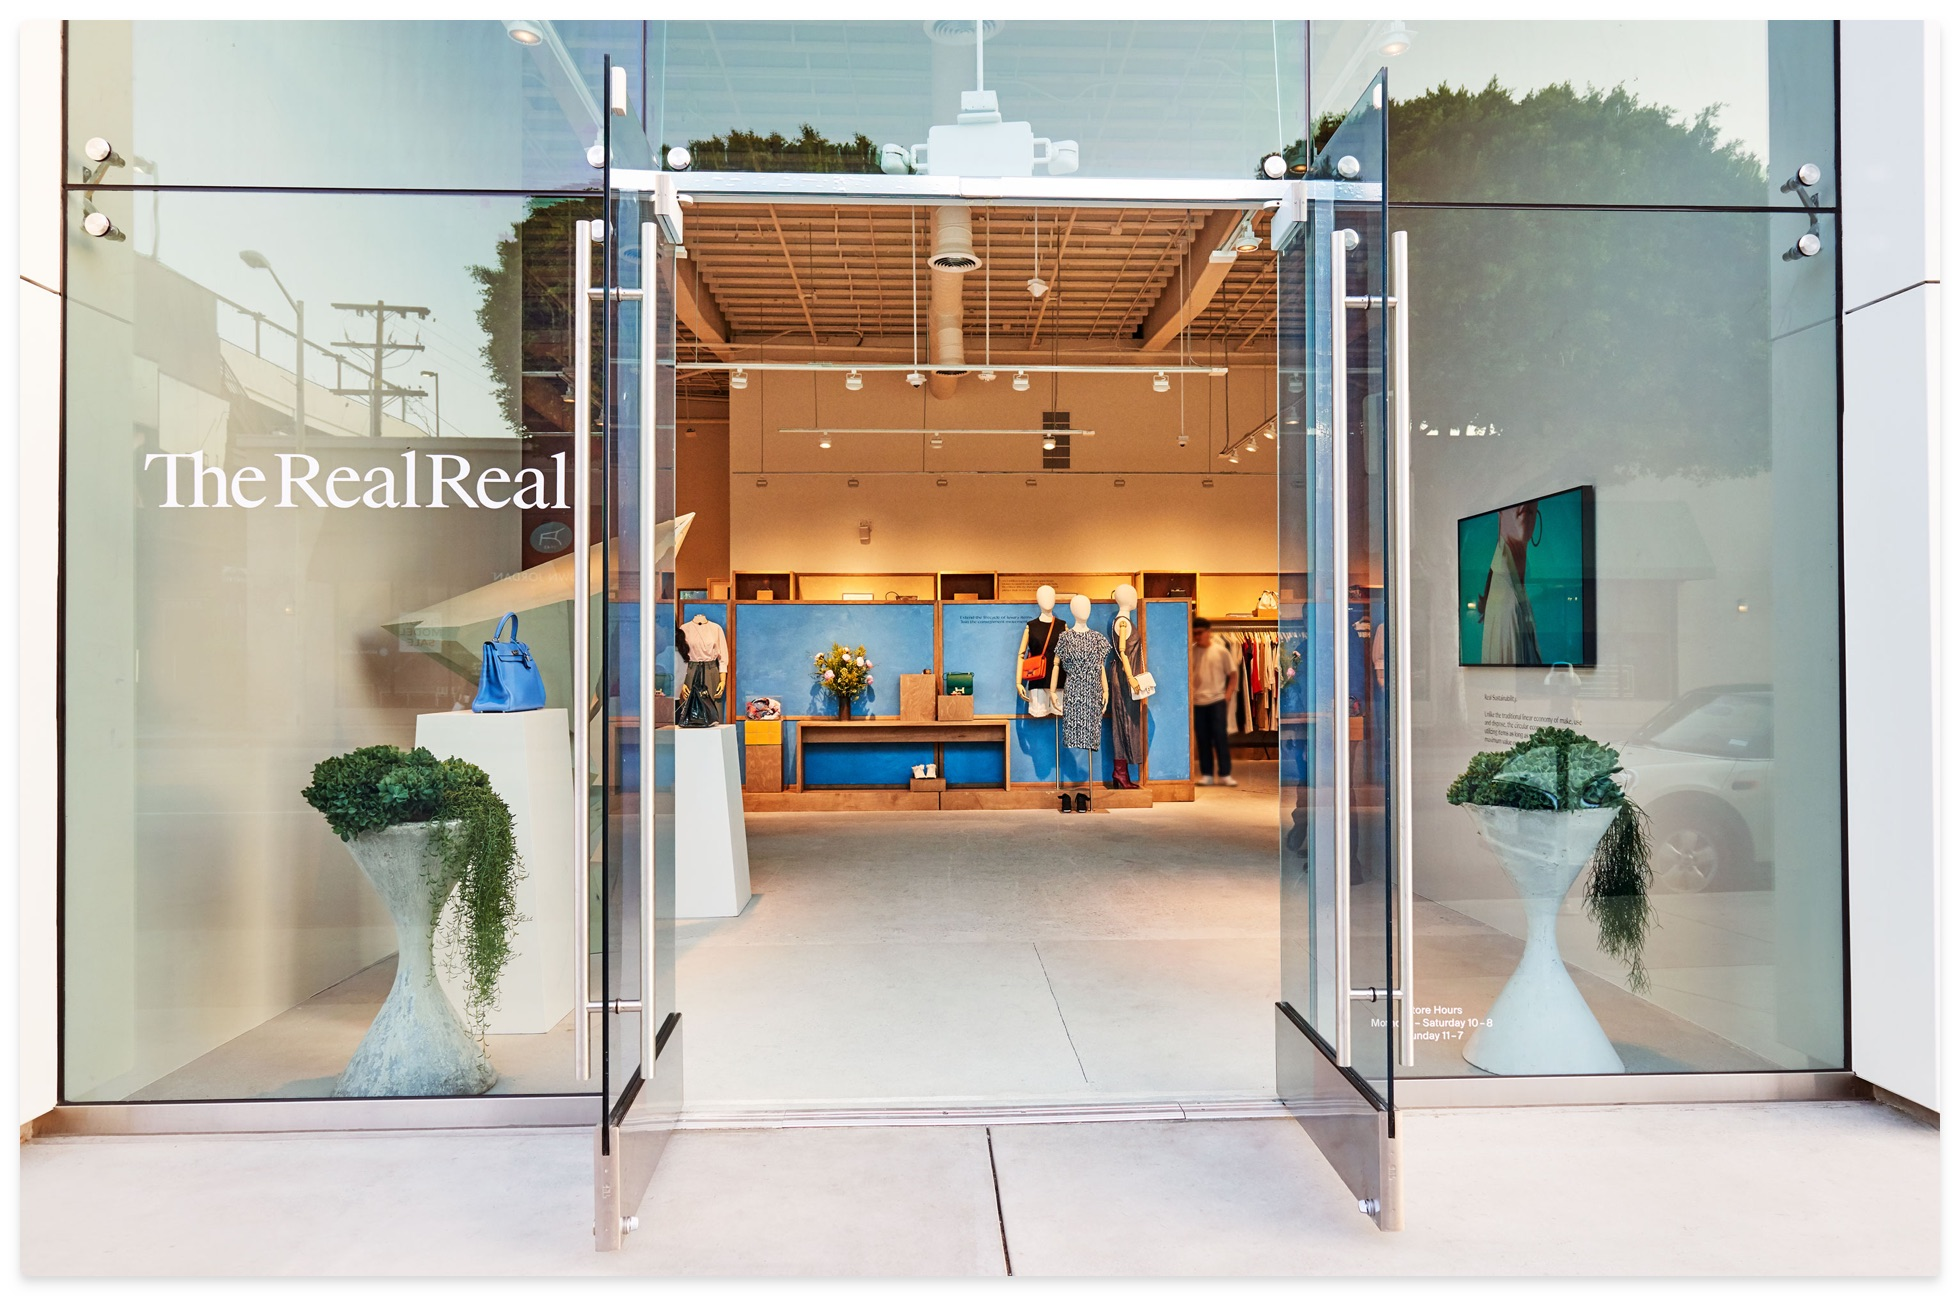 The entrance of The RealReal store